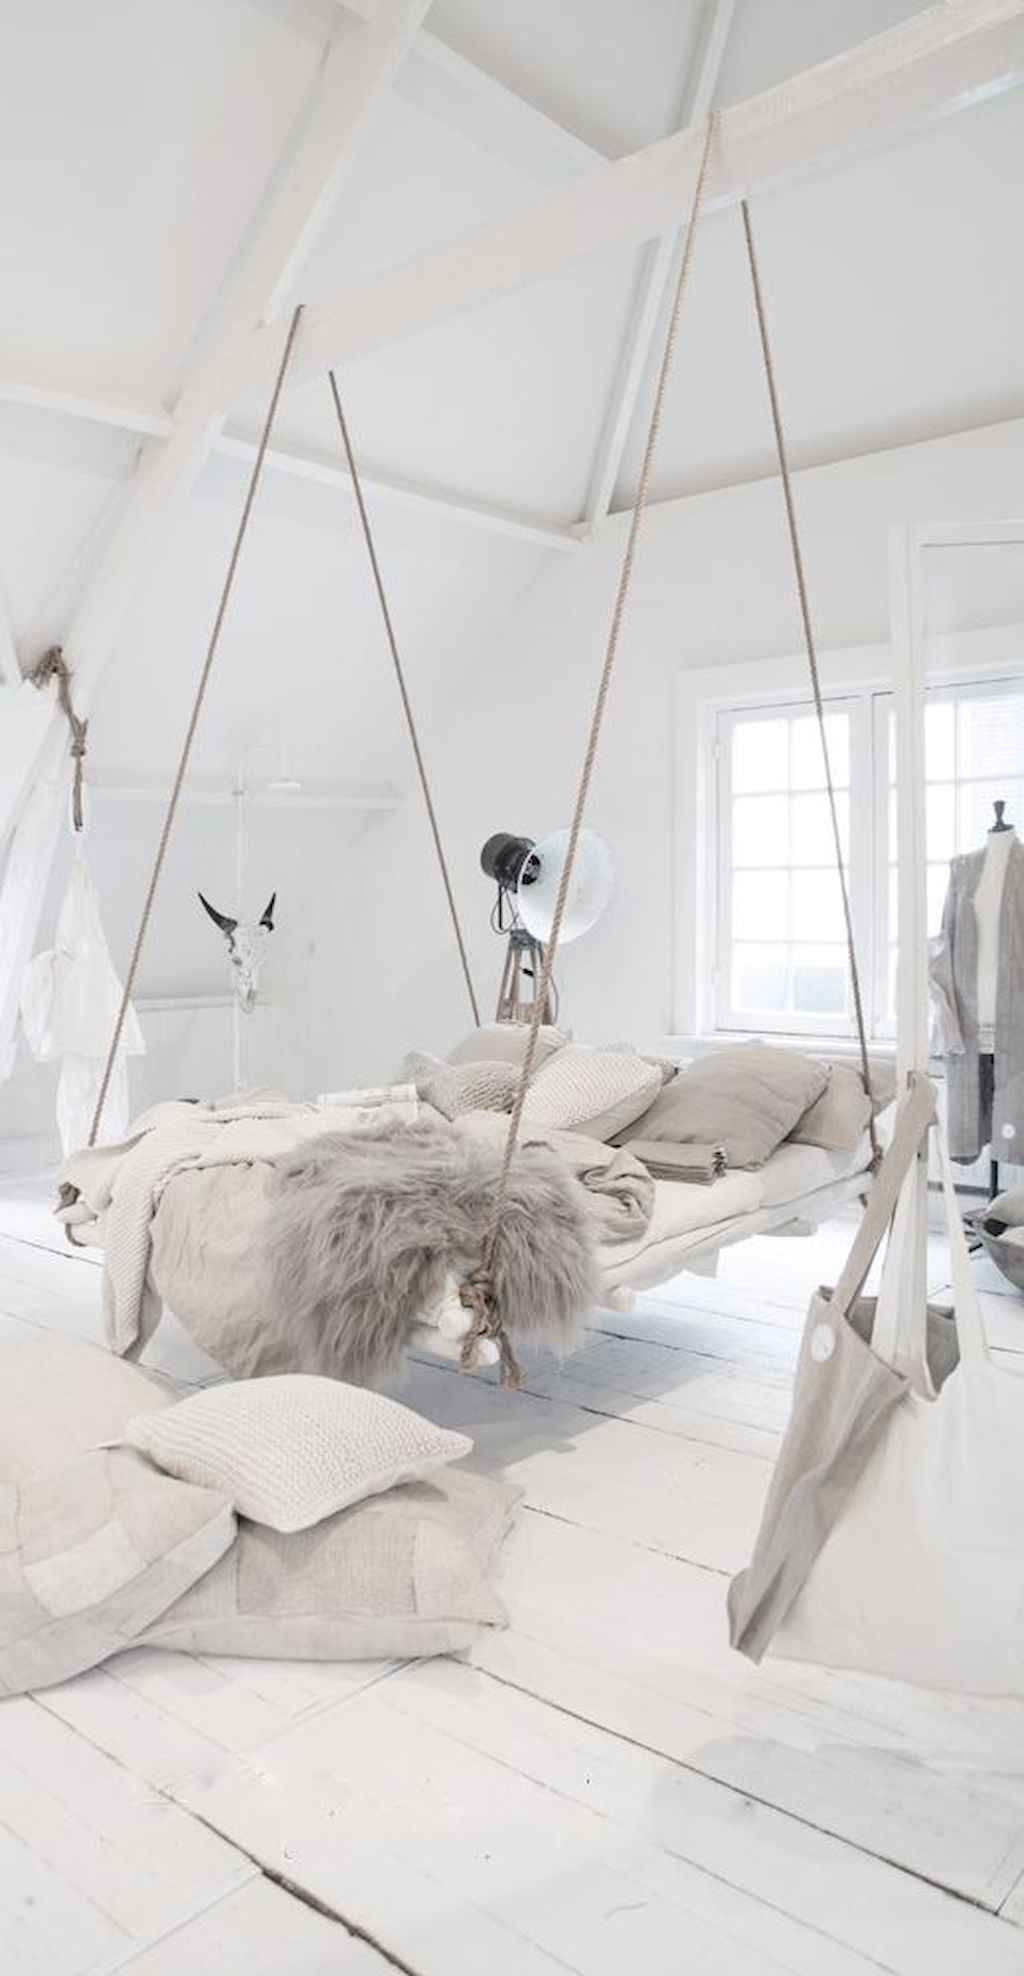 Awesome bedroom decoration ideas (19)